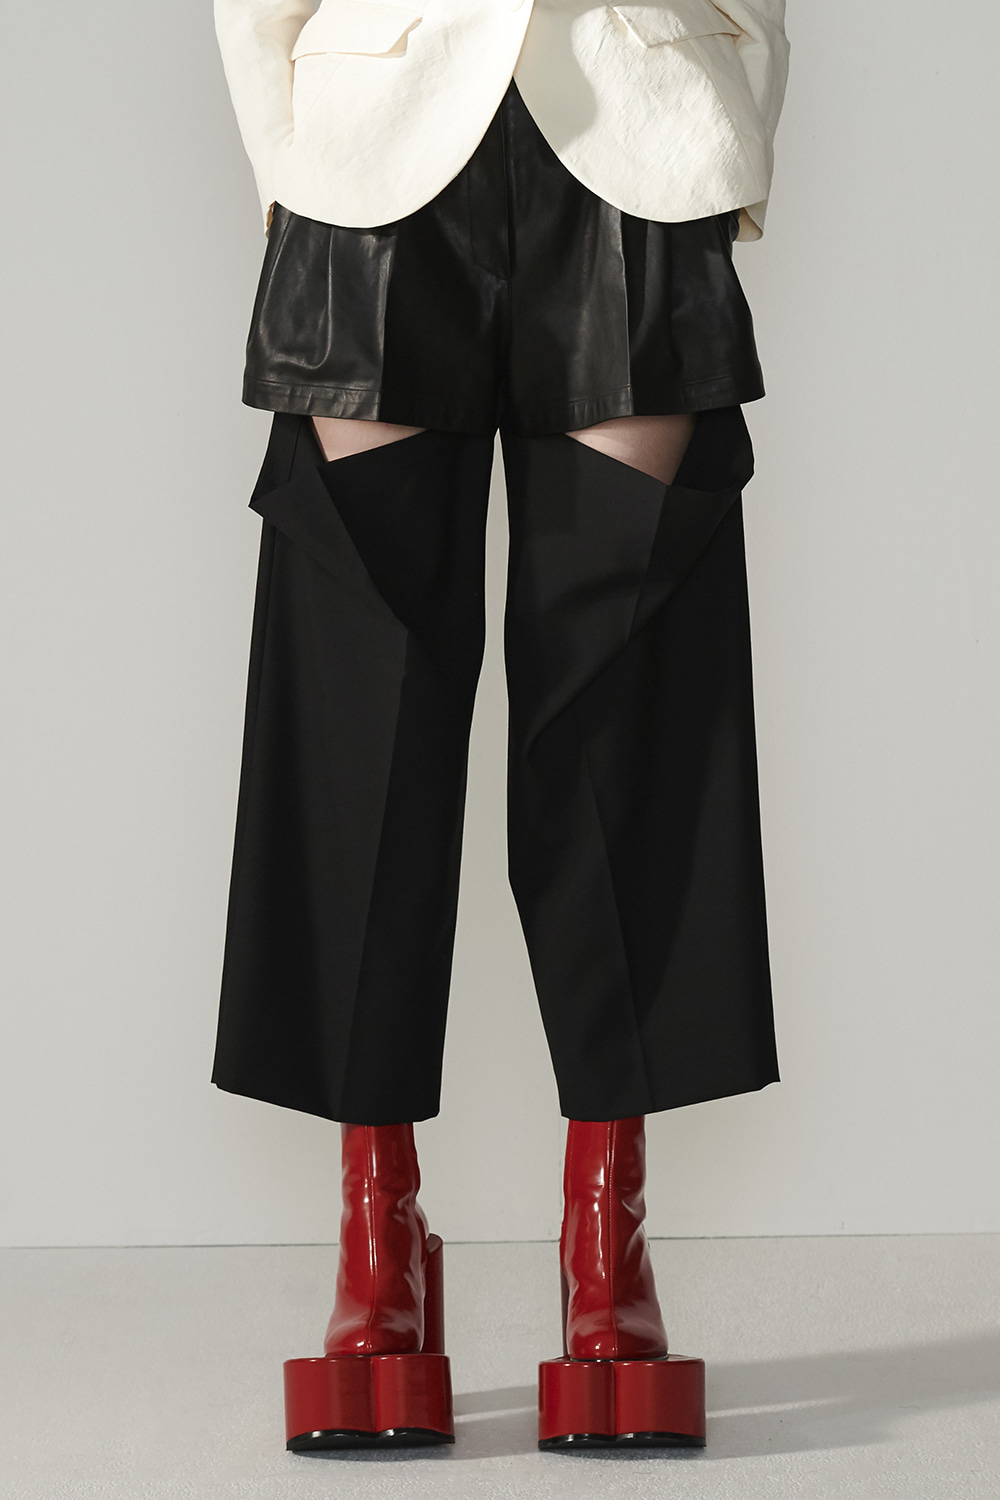 SS21 KNEE SLIT BLACK PANTS